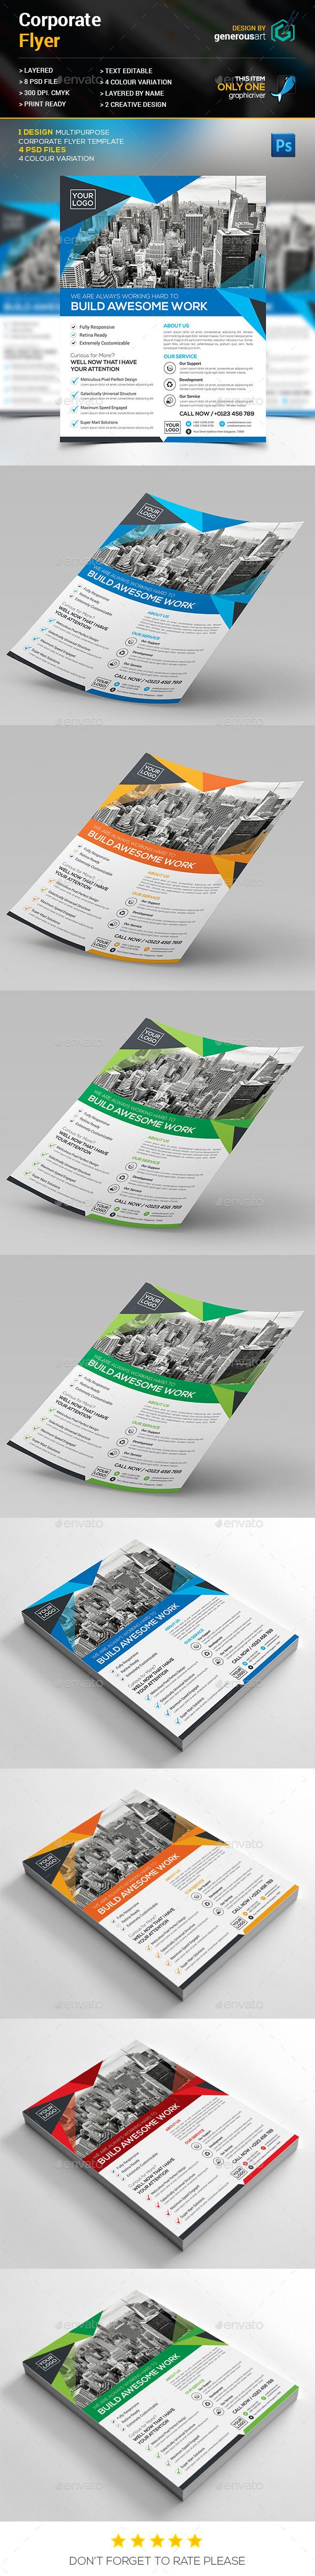 Corporate Flyer Template PSD #design Download: http://graphicriver ...